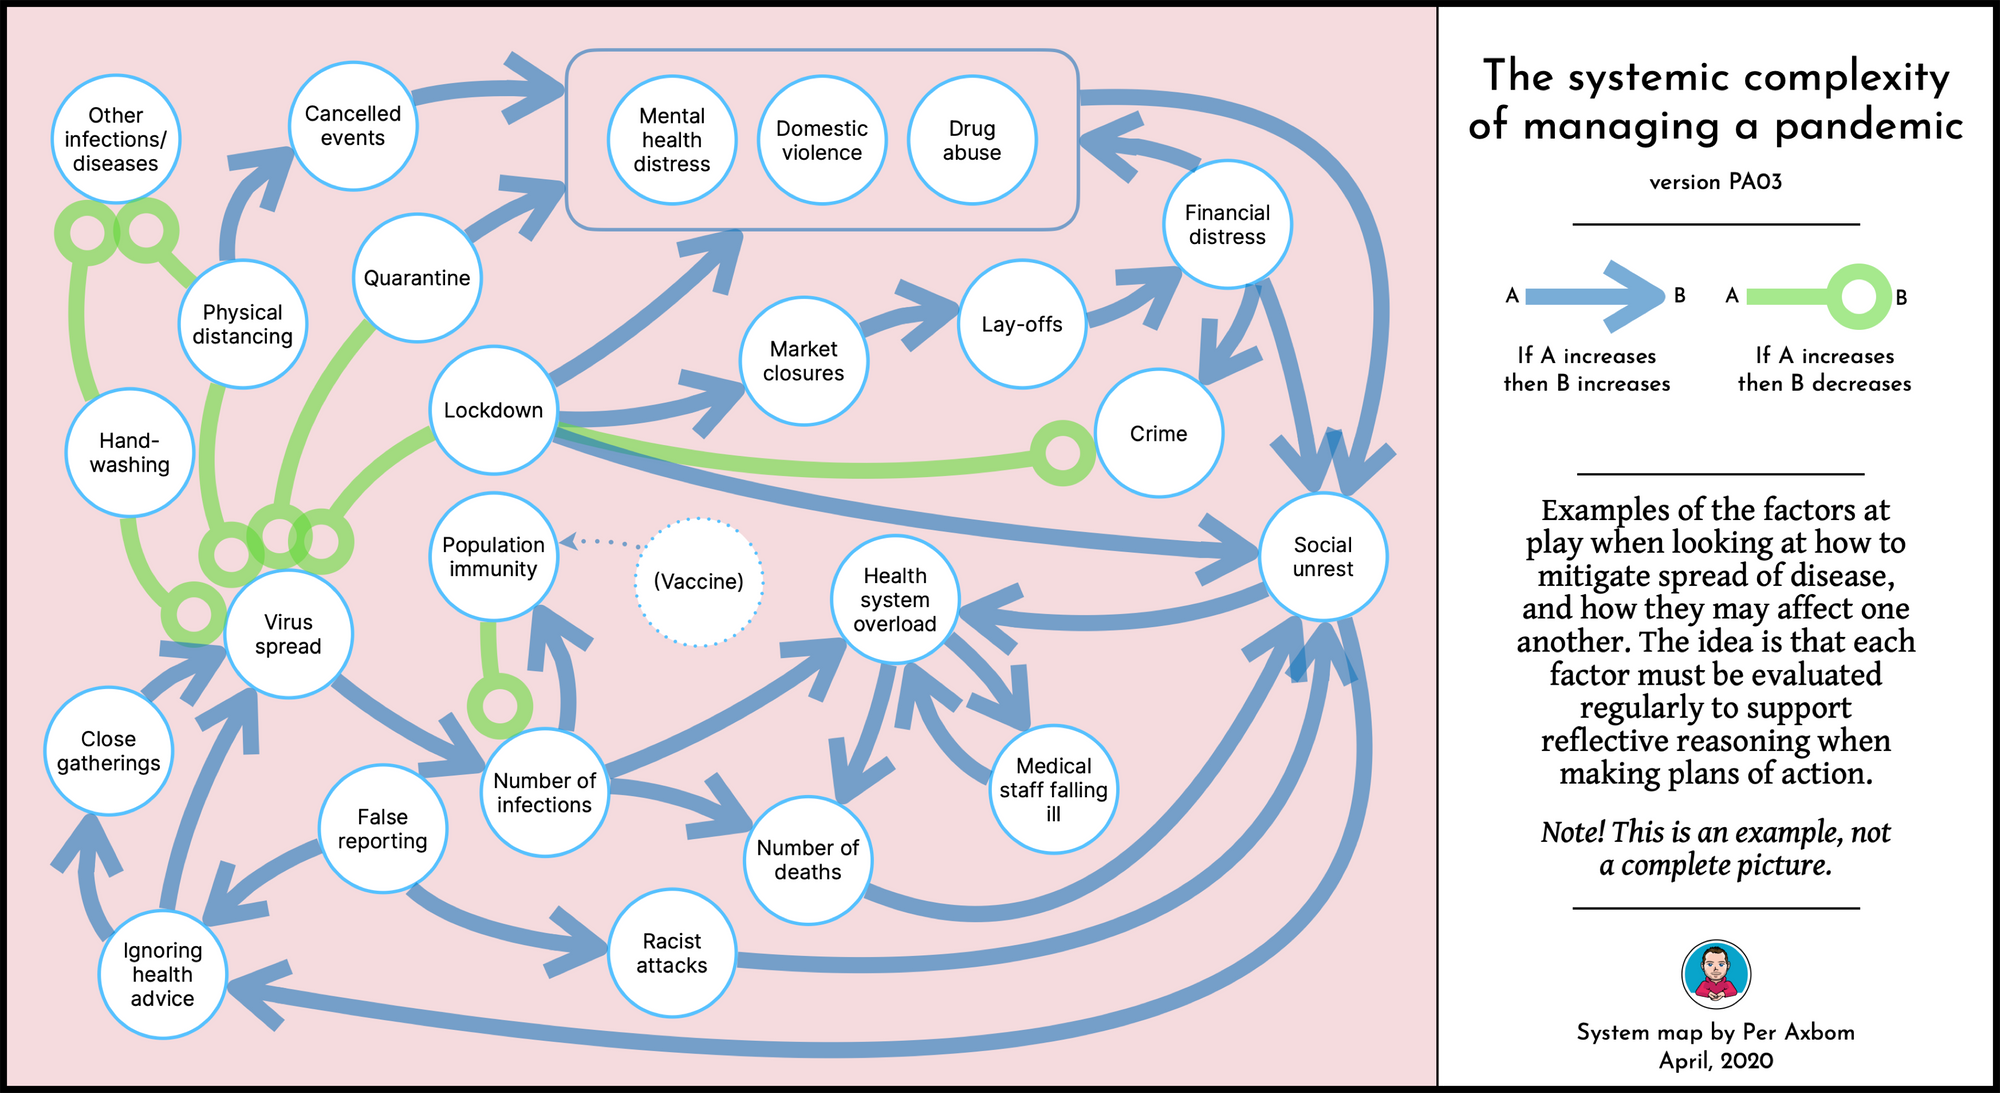 System map with arrows between different topic areas in circles